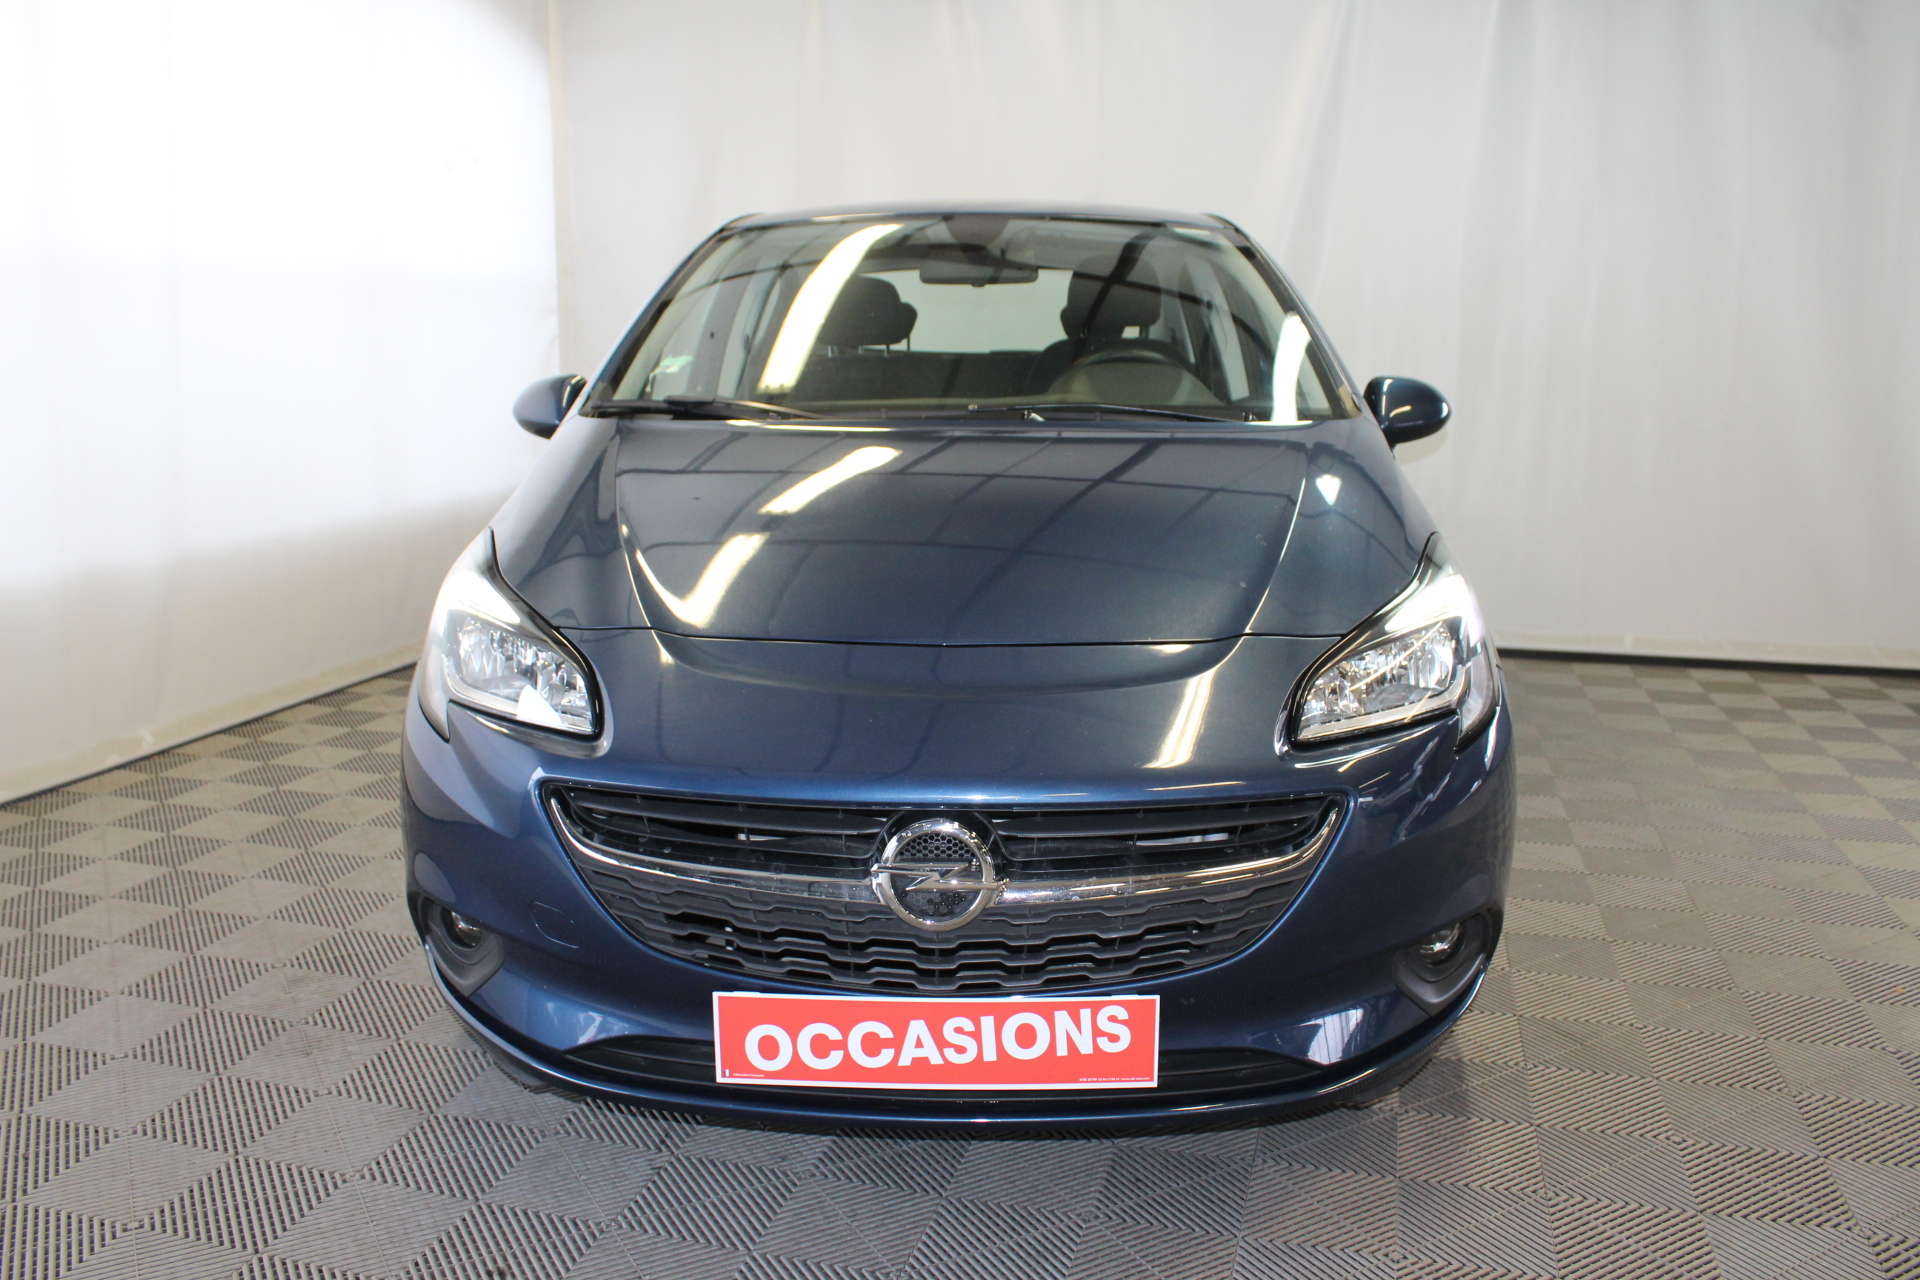 OPEL CORSA 2016 à 8400 € - Photo n°2